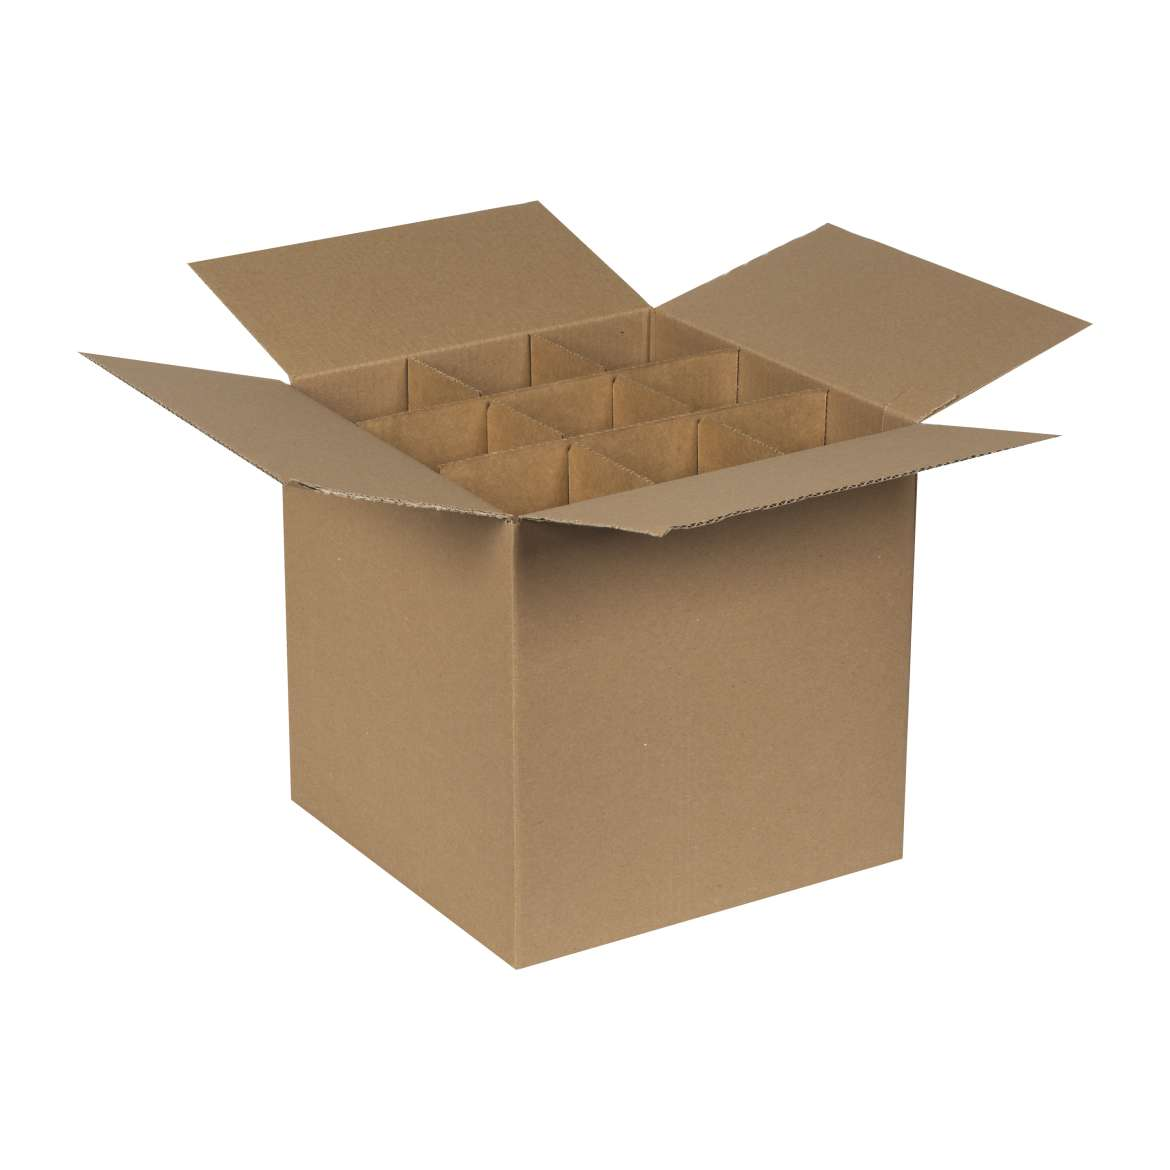 Cardboard Box Dividers Duck Brand Drinking Glass Kitchen Moving Kit 1 Box And 4 Dividers